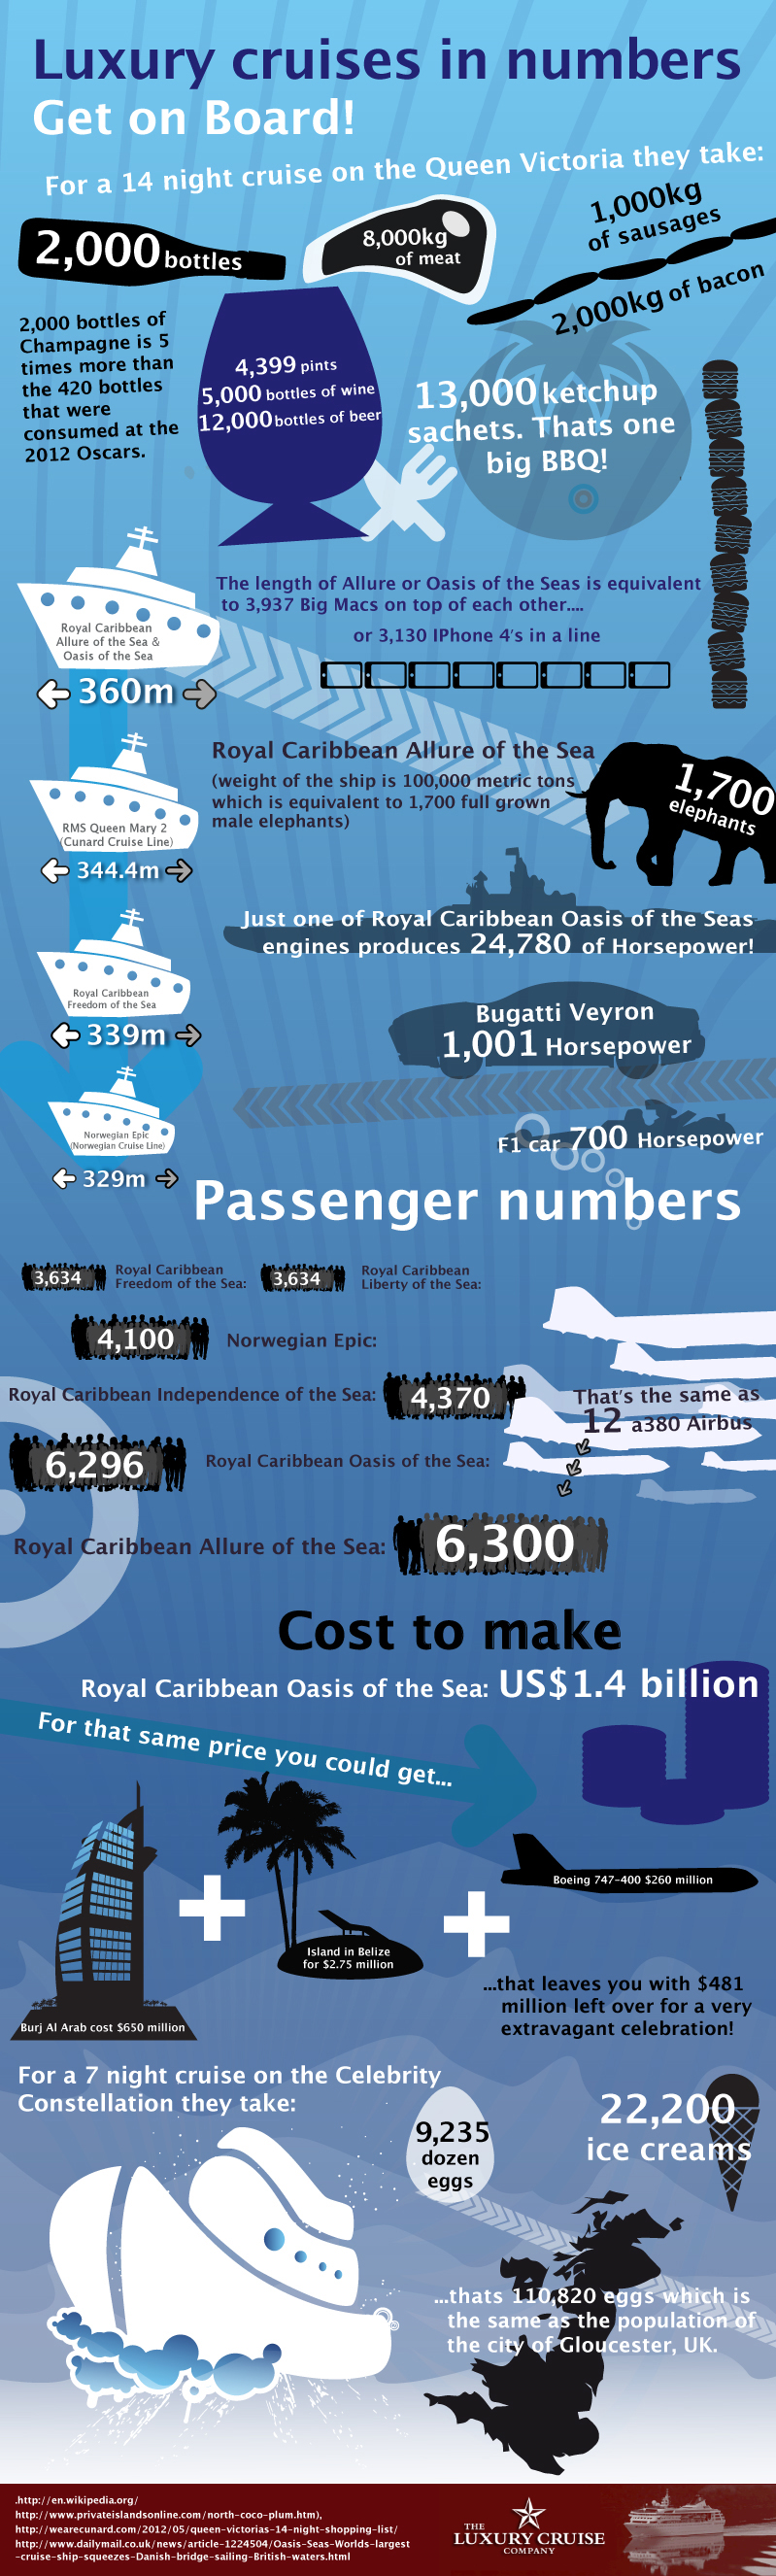 Get on Board! Luxury Cruises in Numbers